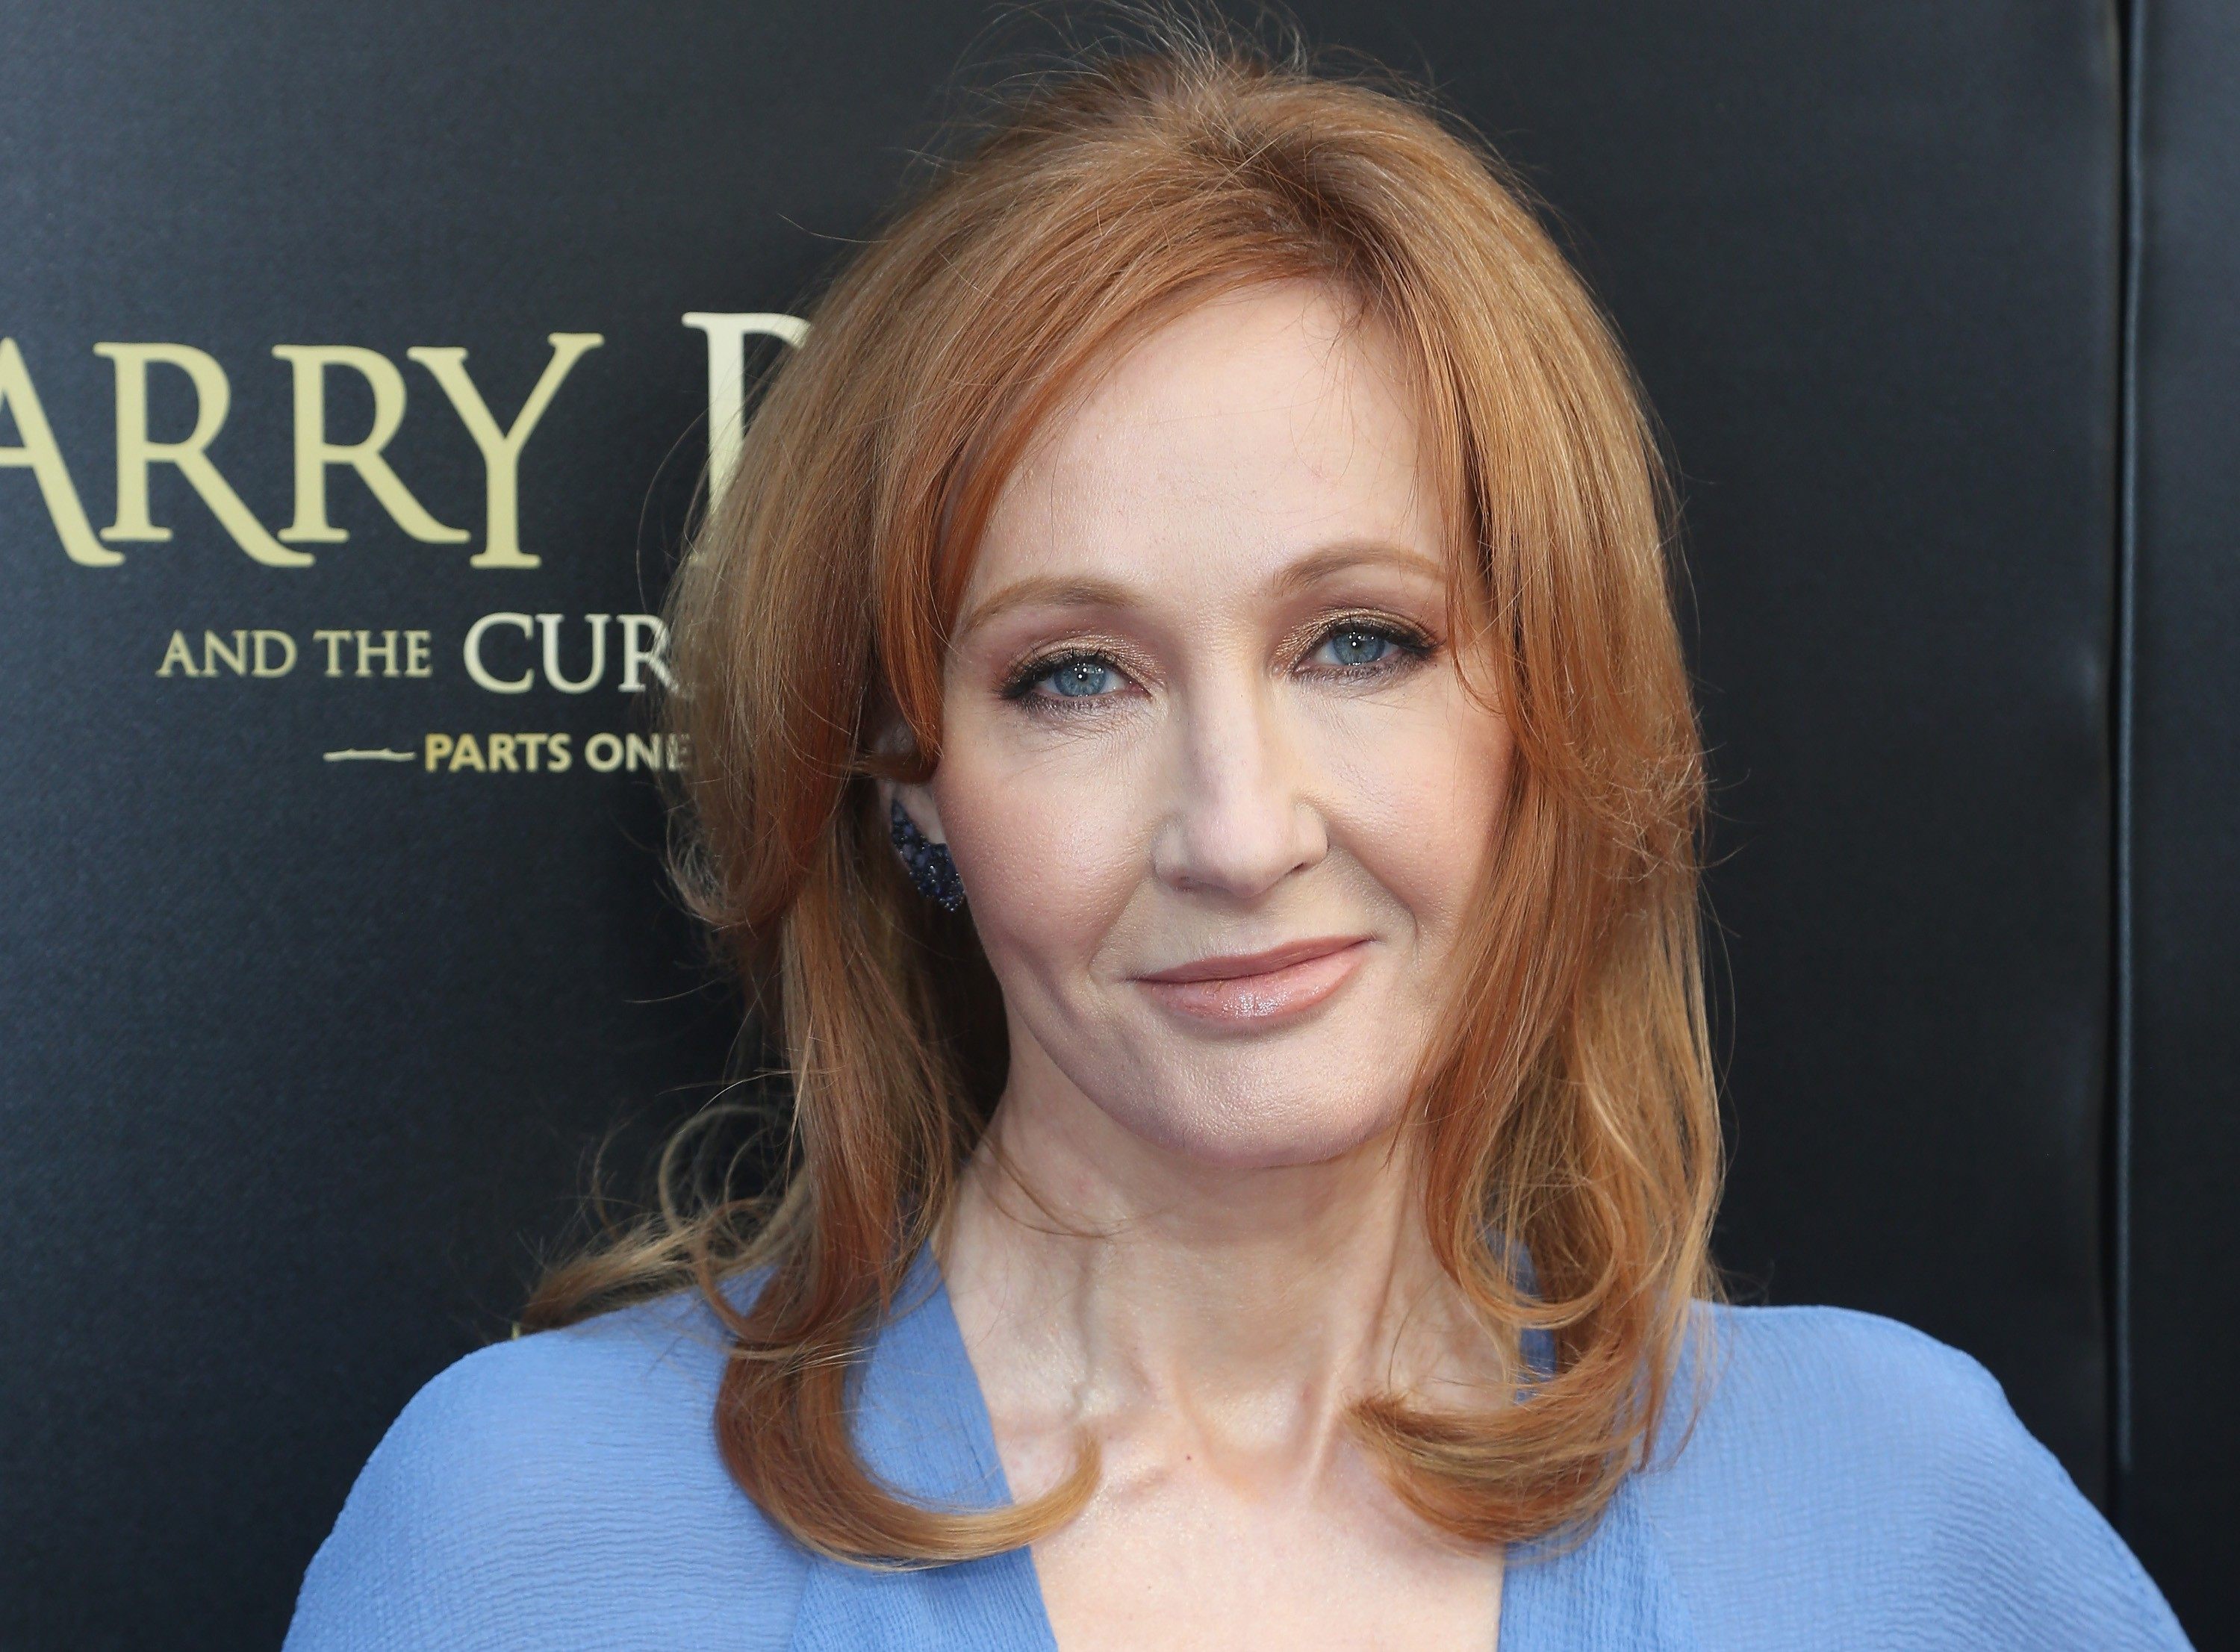 """NEW YORK, NY - APRIL 22:  J.K. Rowling poses at """"Harry Potter and The Cursed Child parts 1 & 2"""" on Broadway Opening Night at The Lyric Theatre on April 22, 2018 in New York City.  (Photo by Bruce Glikas/Bruce Glikas/FilmMagic)"""